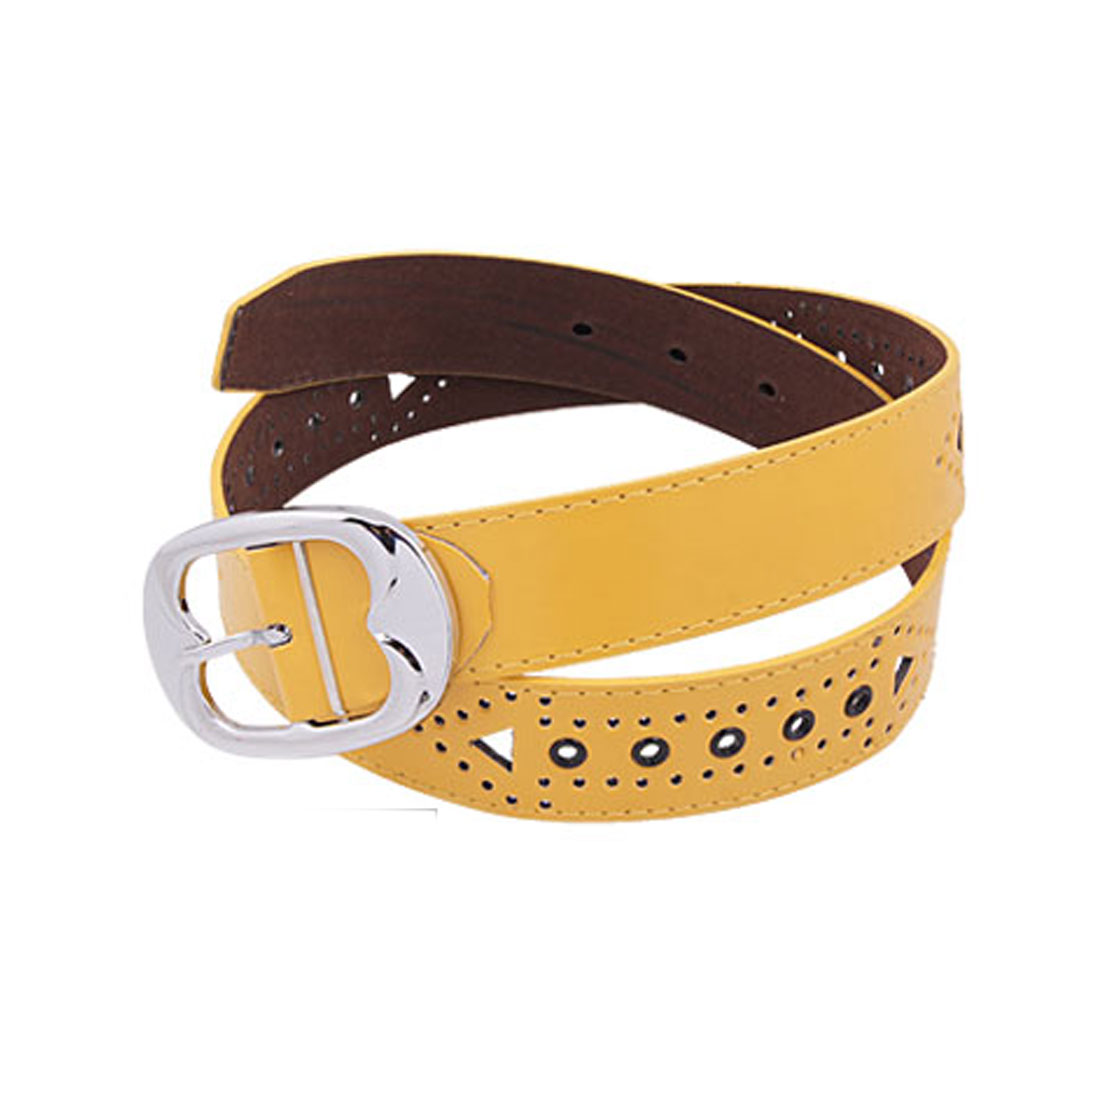 Single Prong Buckle Chocolate Back Yellow Front Faux Leather Belt for Ladies